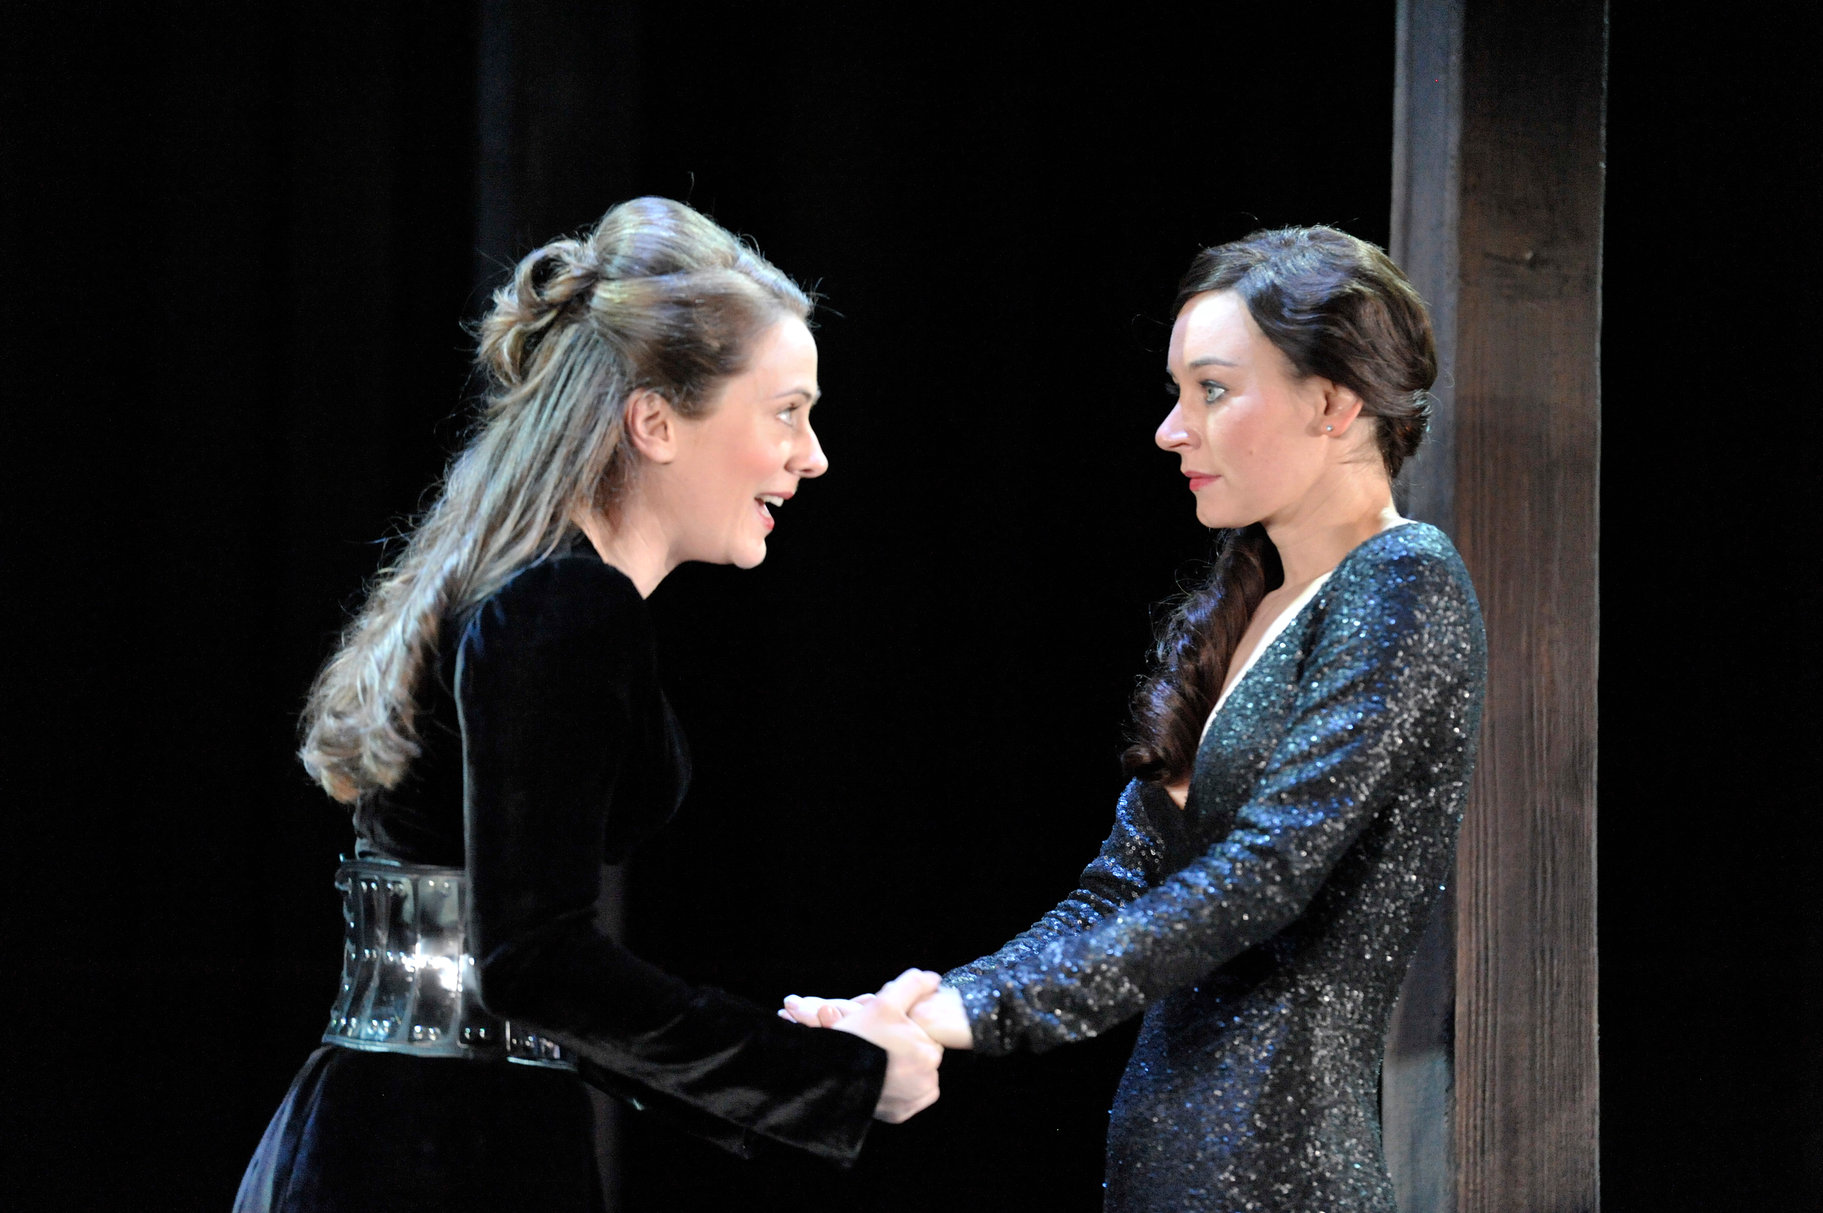 Celia and Rosalind hold hands.